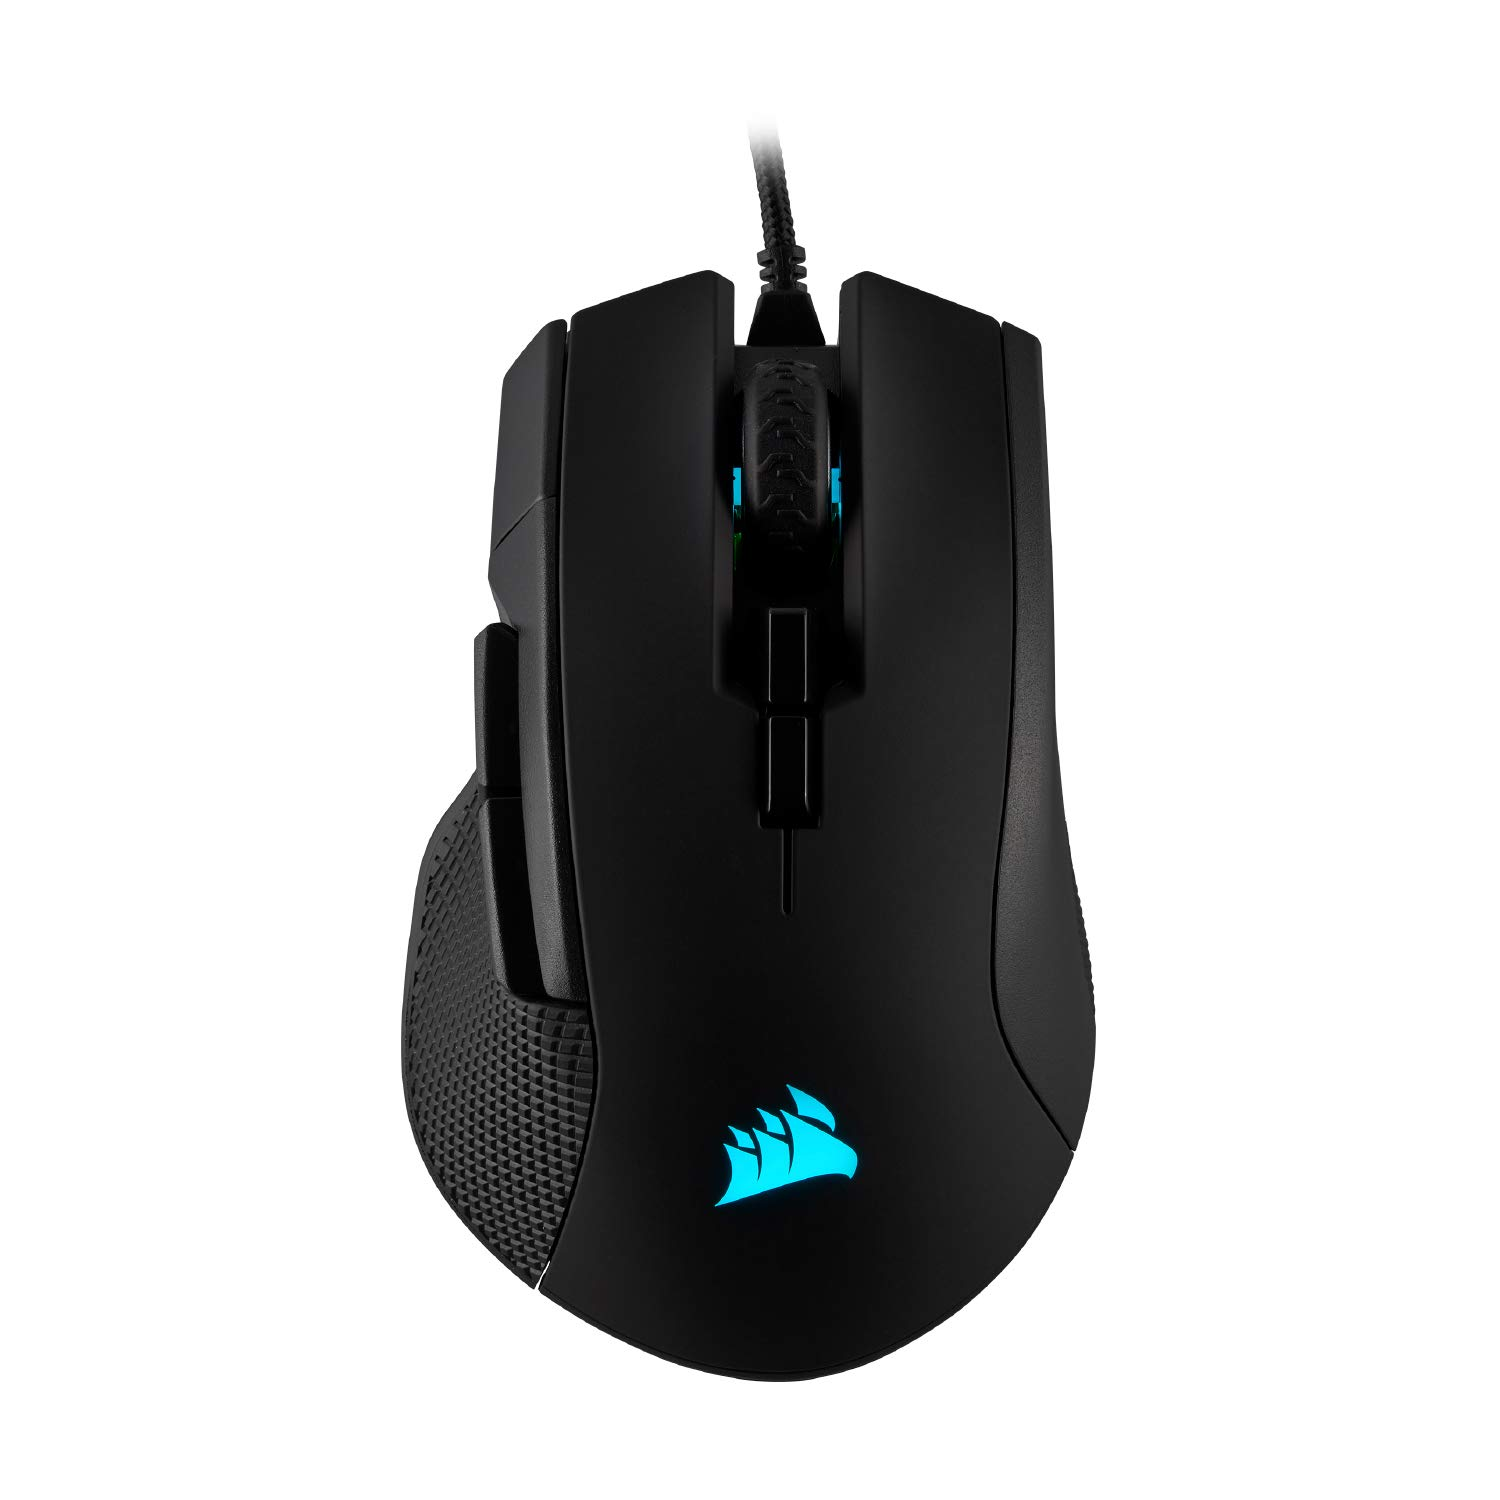 CORSAIR IRON CLAW RGB Gaming Mouse